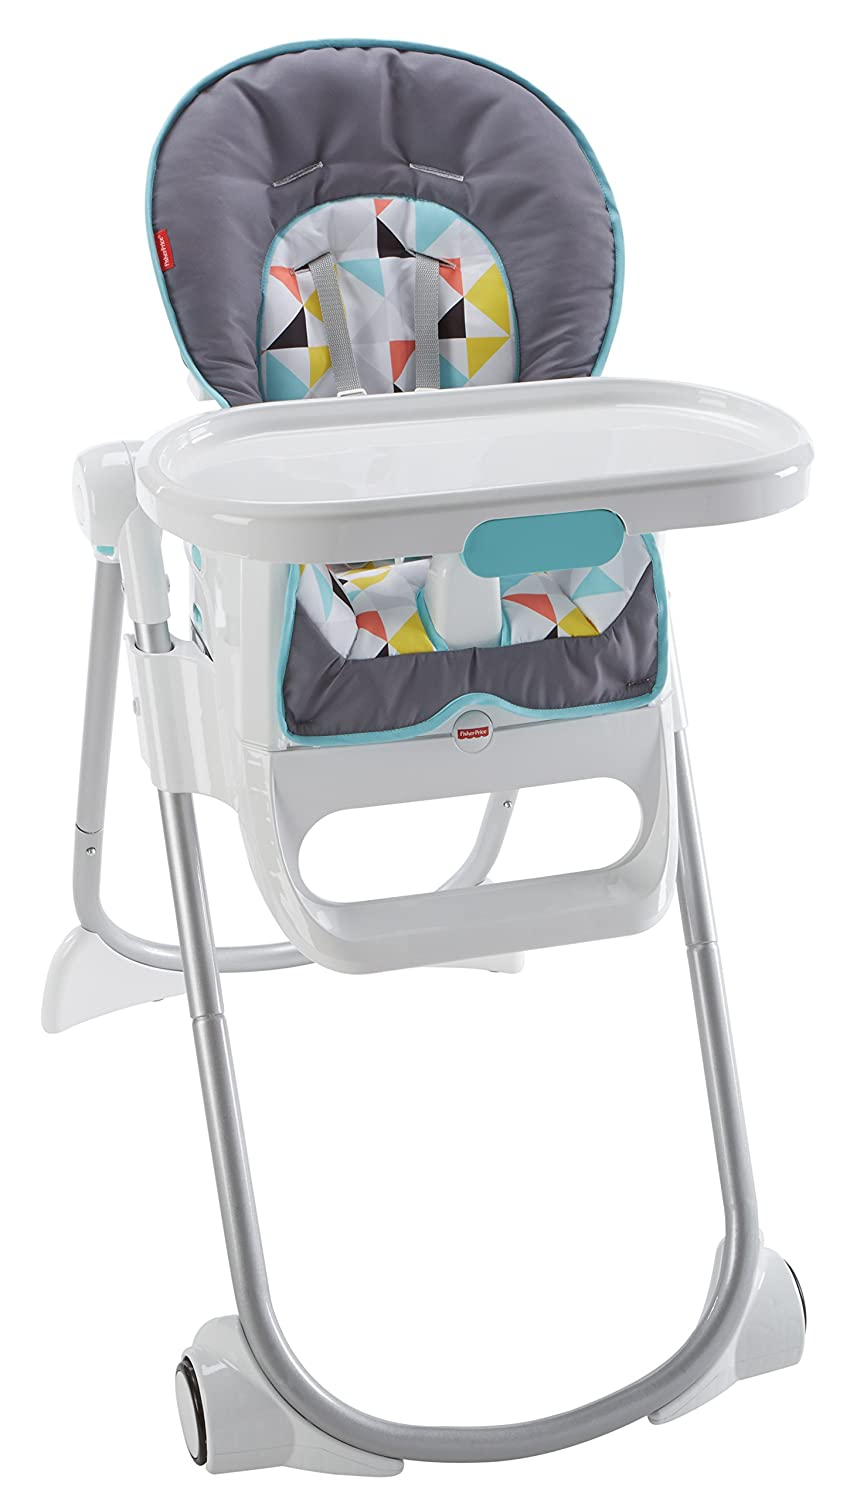 Fisher-Price 4-in-1 Total Clean High Chair - Geometric Amazonca/FISNE DRF20